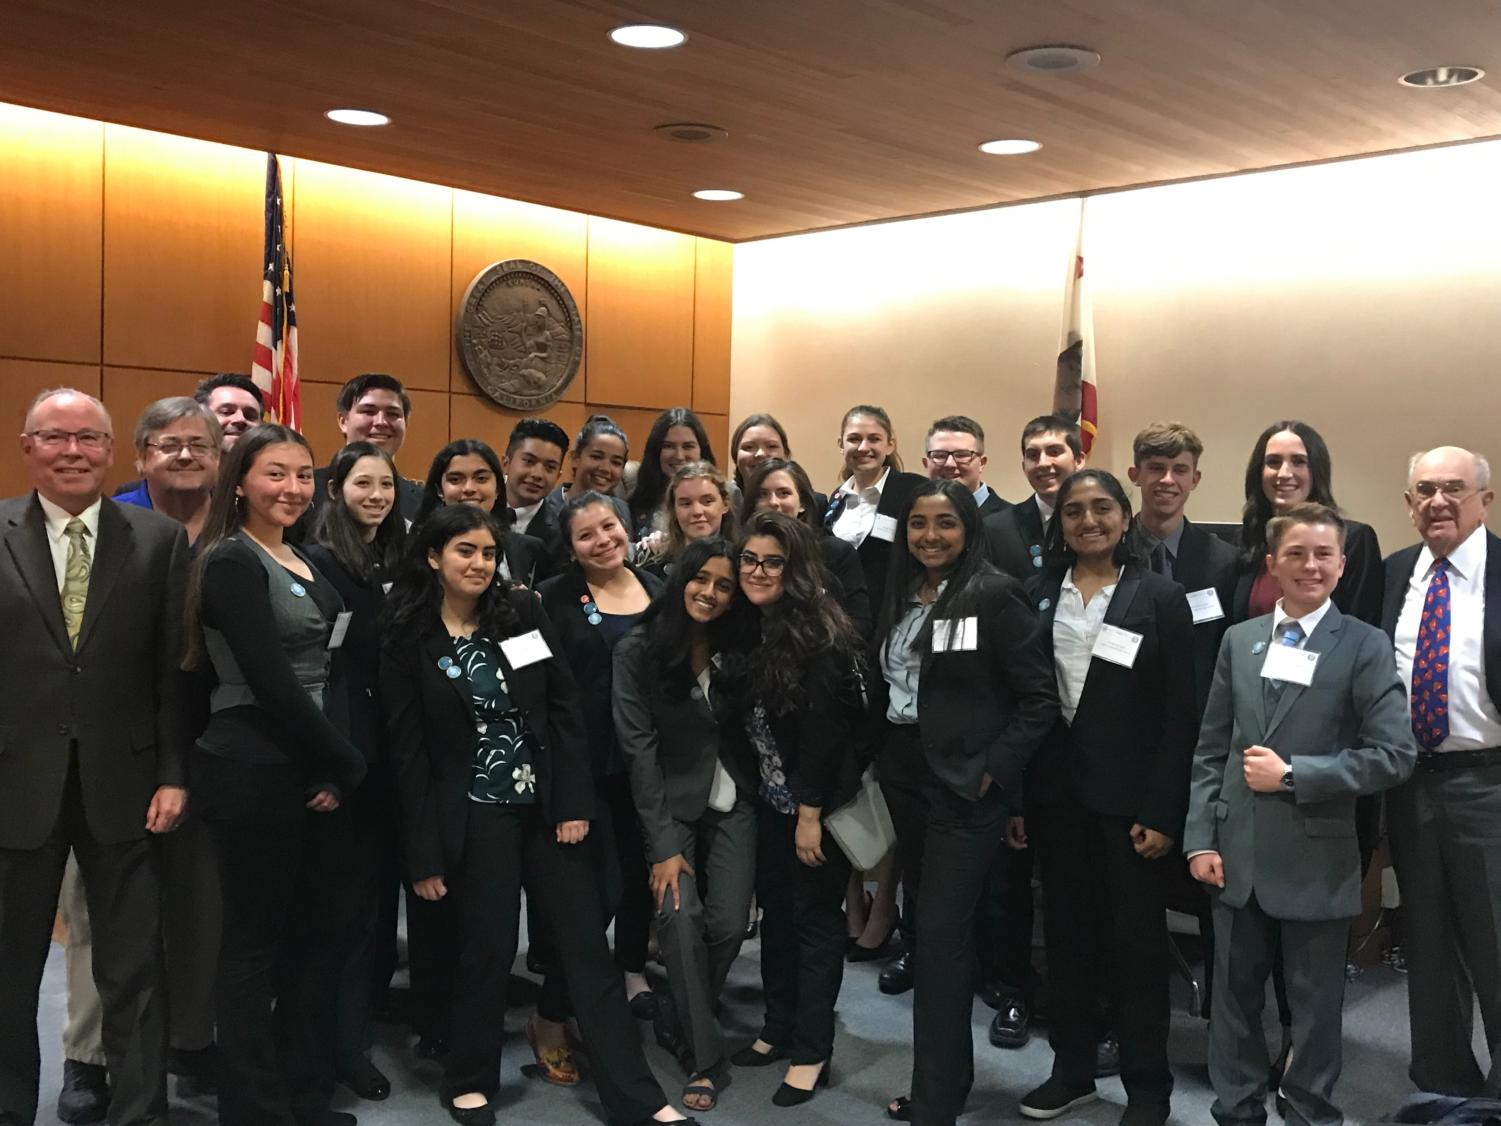 This year, Cam High's mock trial team placed 6th out of 30 teams.